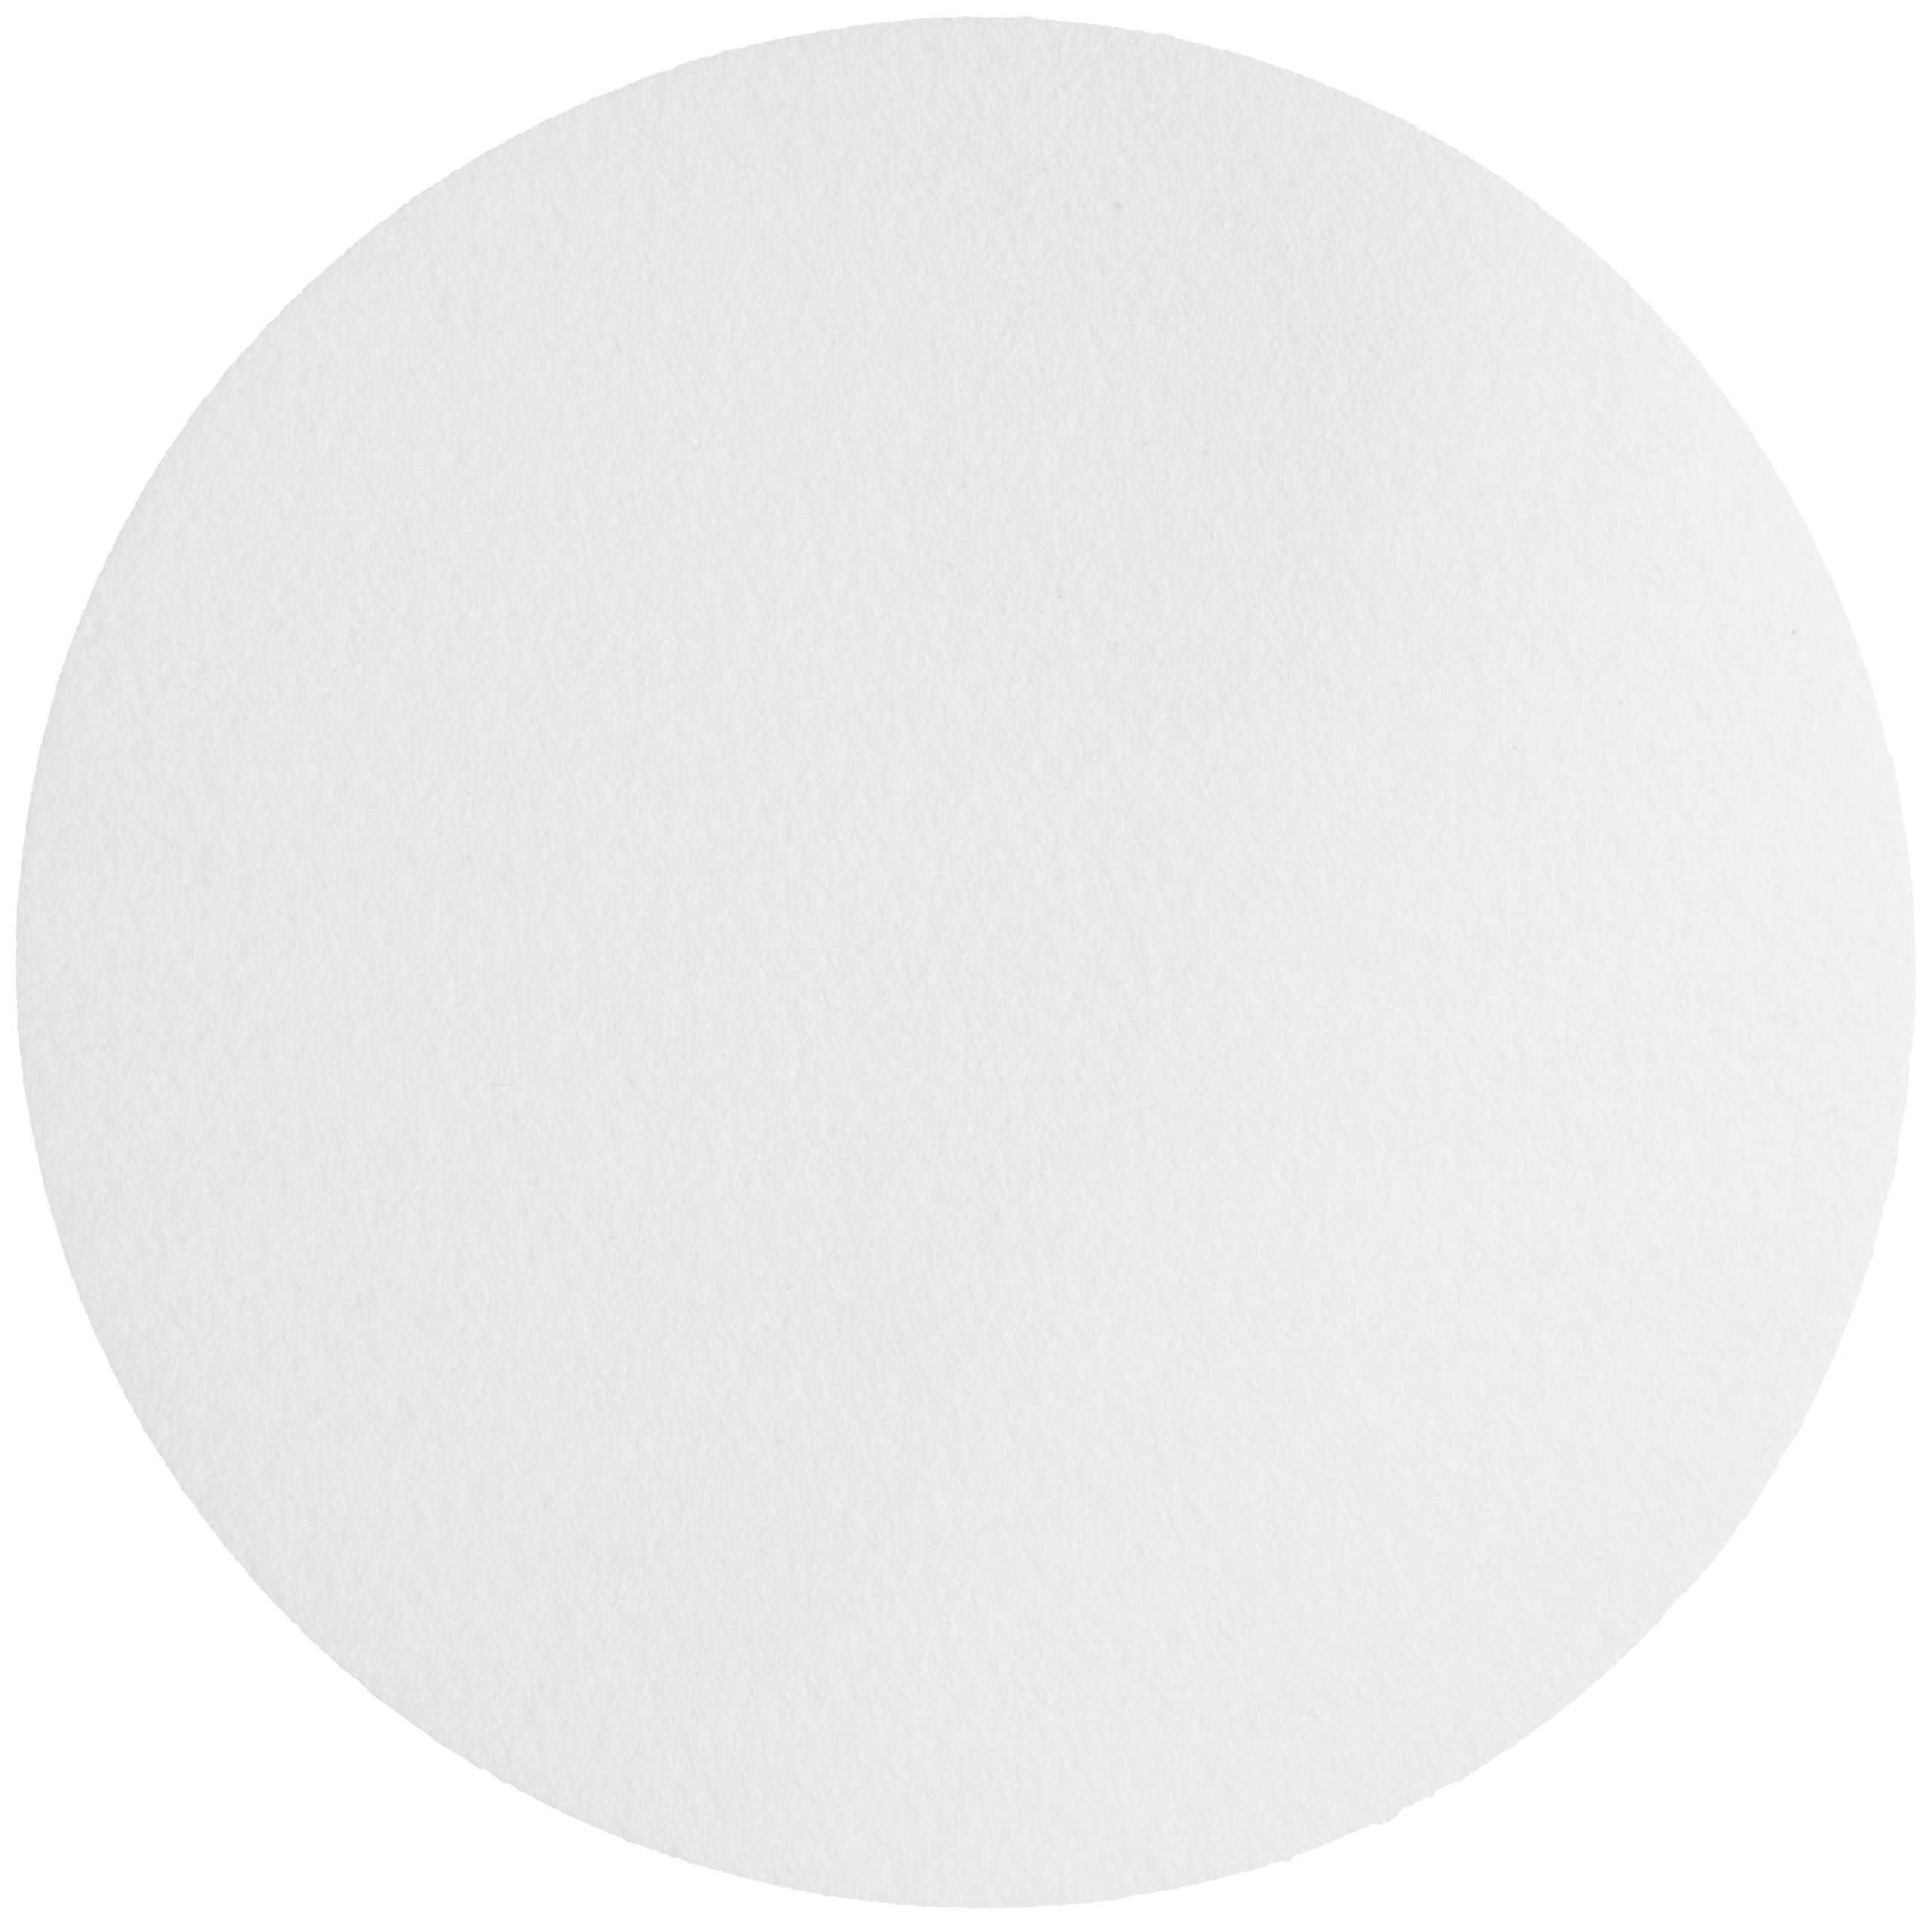 Whatman 1001-185 Quantitative Filter Paper Circles, 11 Micron, 10.5 s/100mL/sq inch Flow Rate, Grade 1, 185mm Diameter (Pack of 100) by Whatman